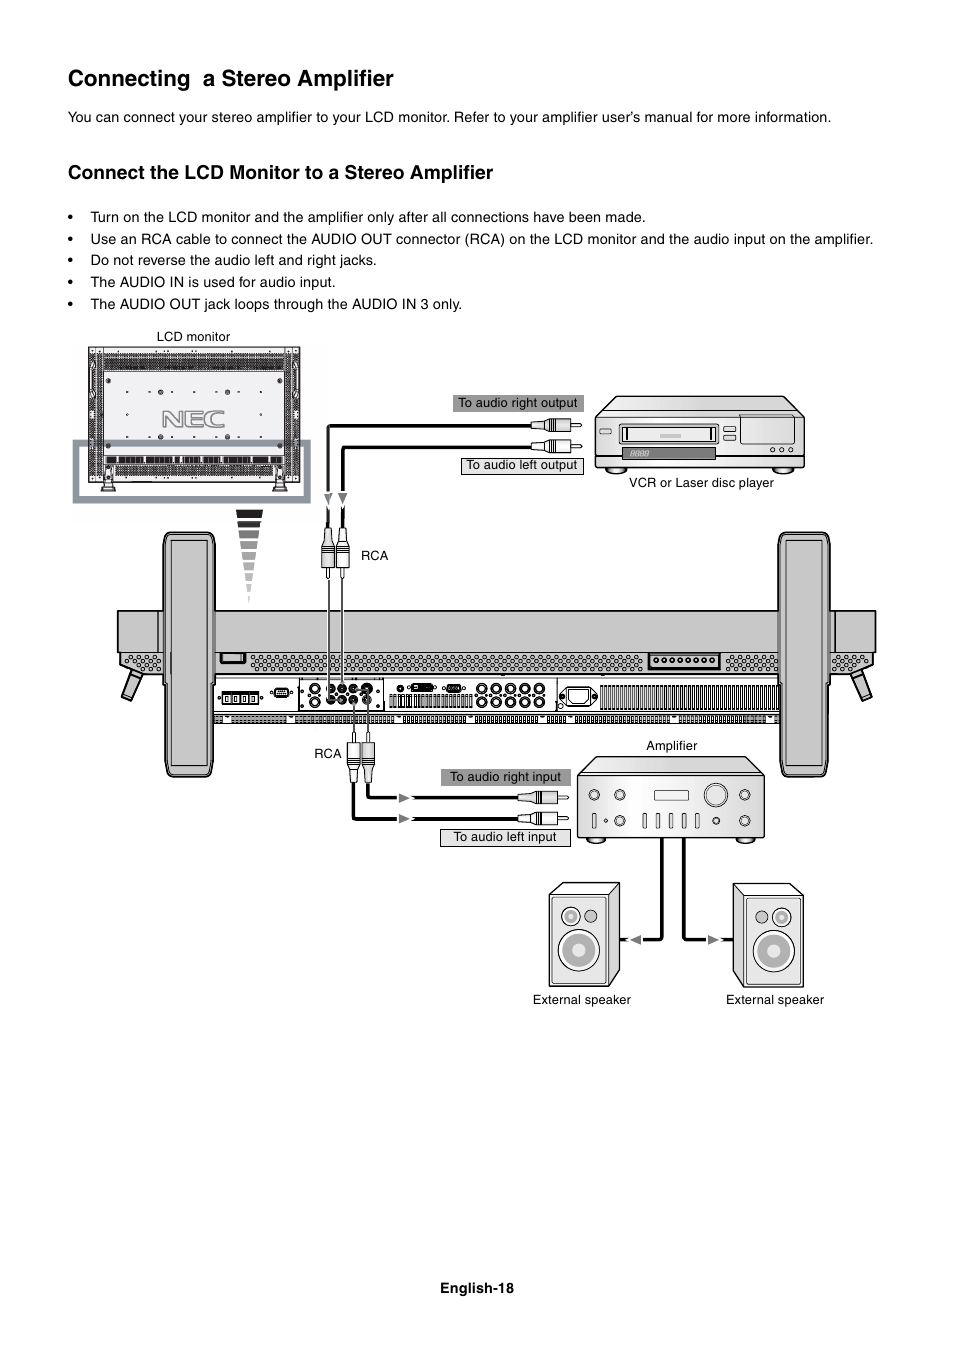 Connecting a stereo amplifier, Connect the lcd monitor to a stereo  amplifier | NEC LCD4000 User Manual | Page 20 / 37